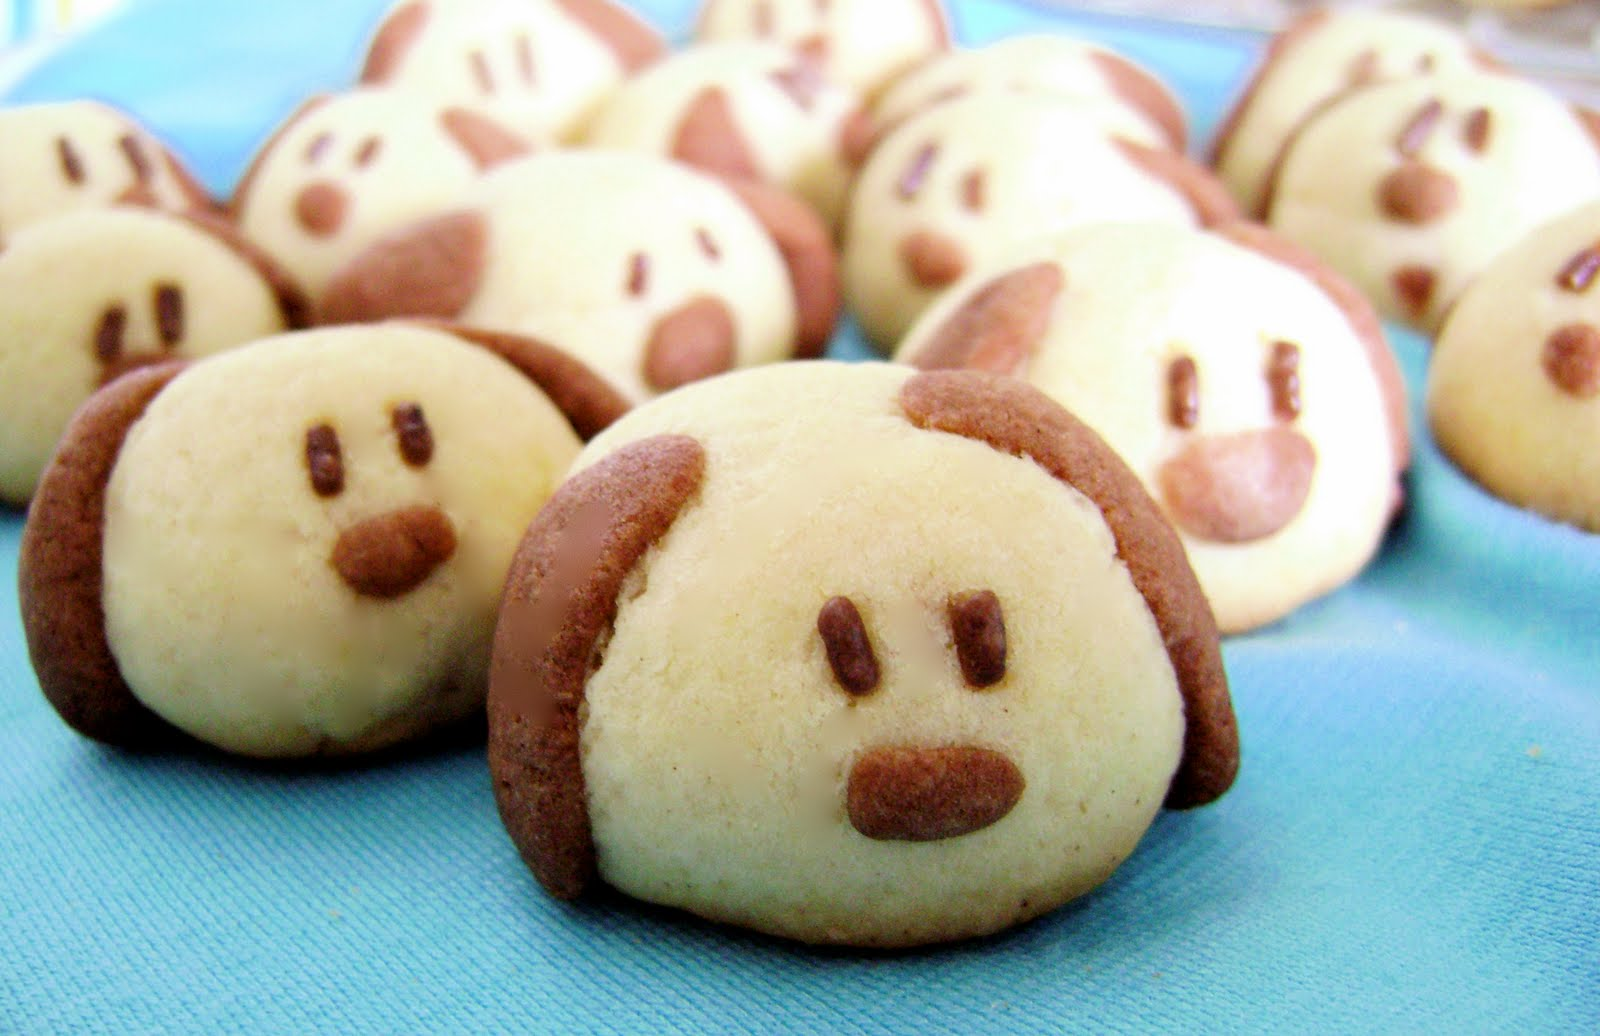 sprinkles of happiness cute cookies breads pastries